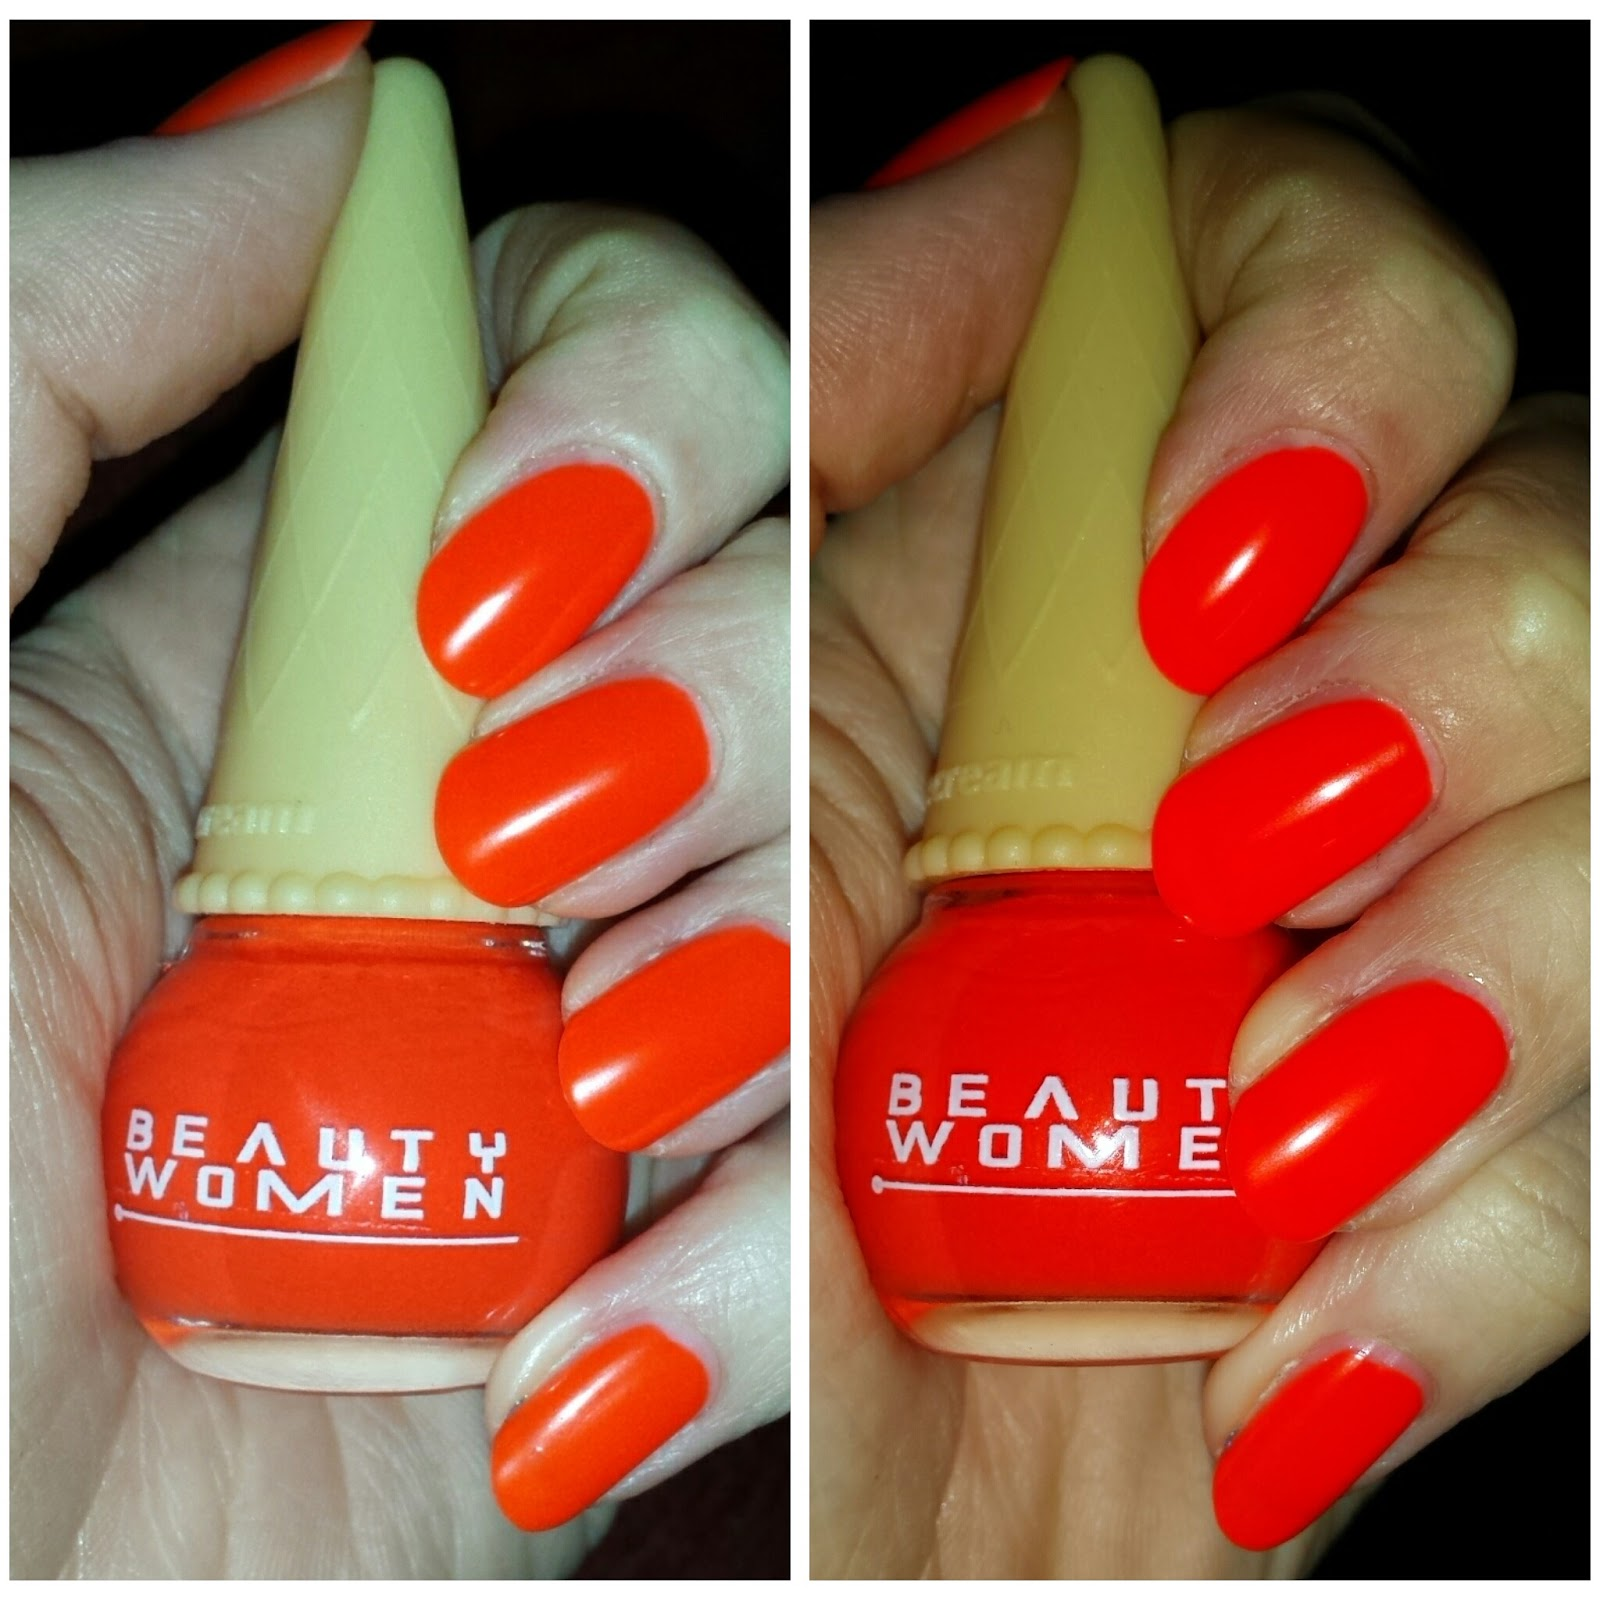 Beauty Gothic Beauty Women NEONORANGE Nagellack